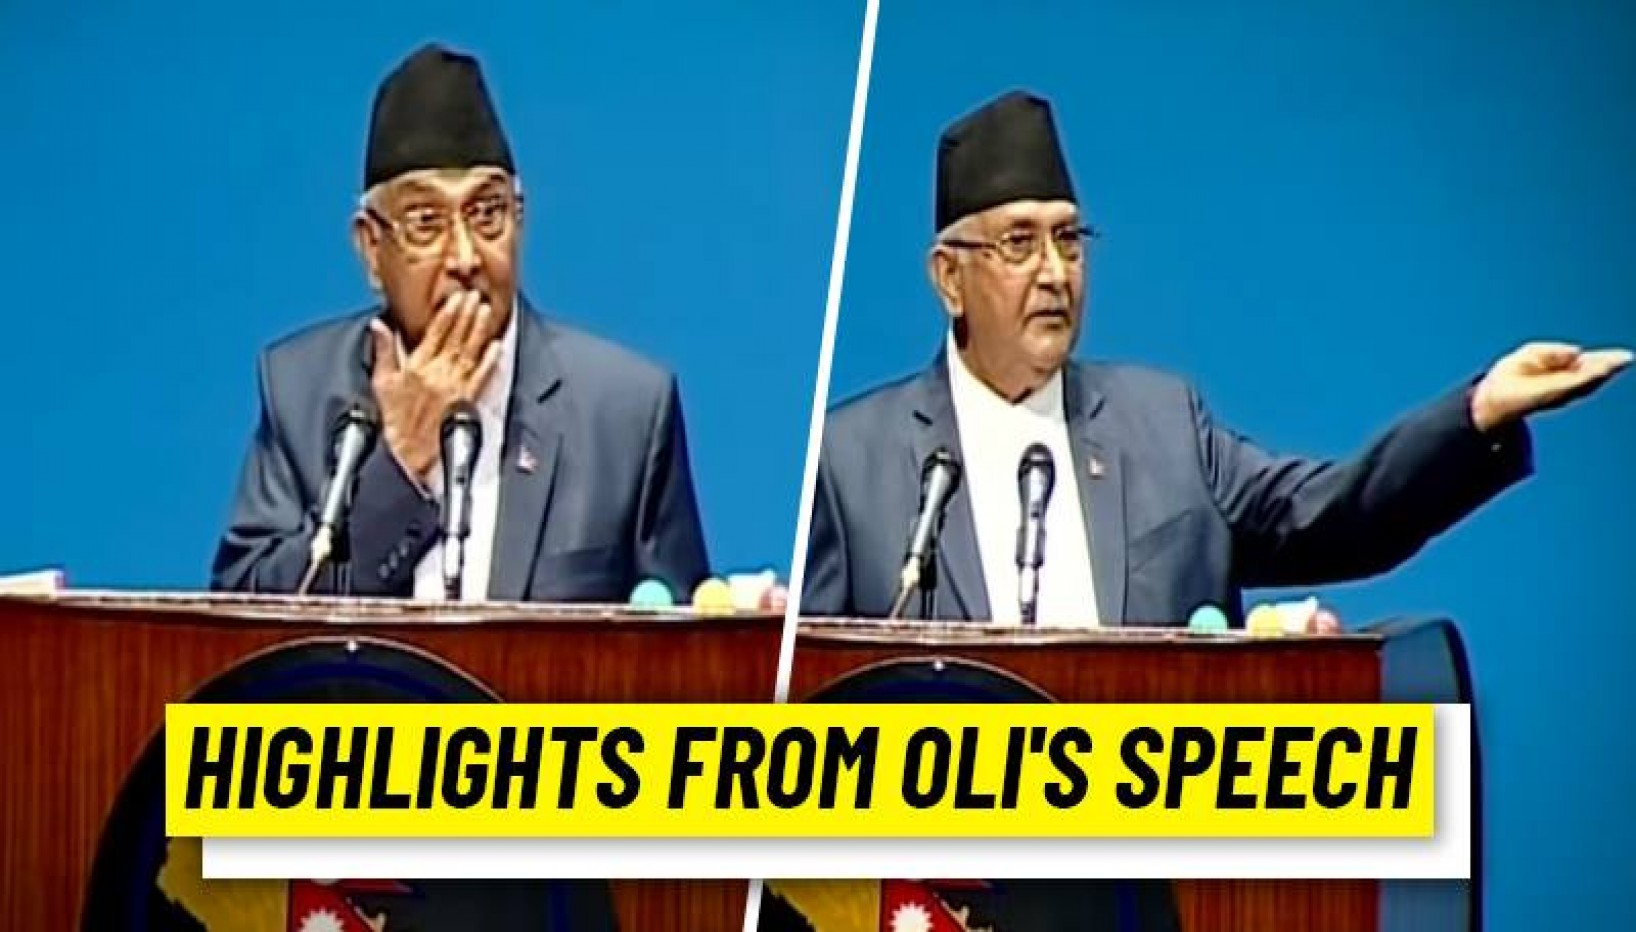 Attacks, Allegations And Challenges: Here Are 10 Highlights From Oli's Speech